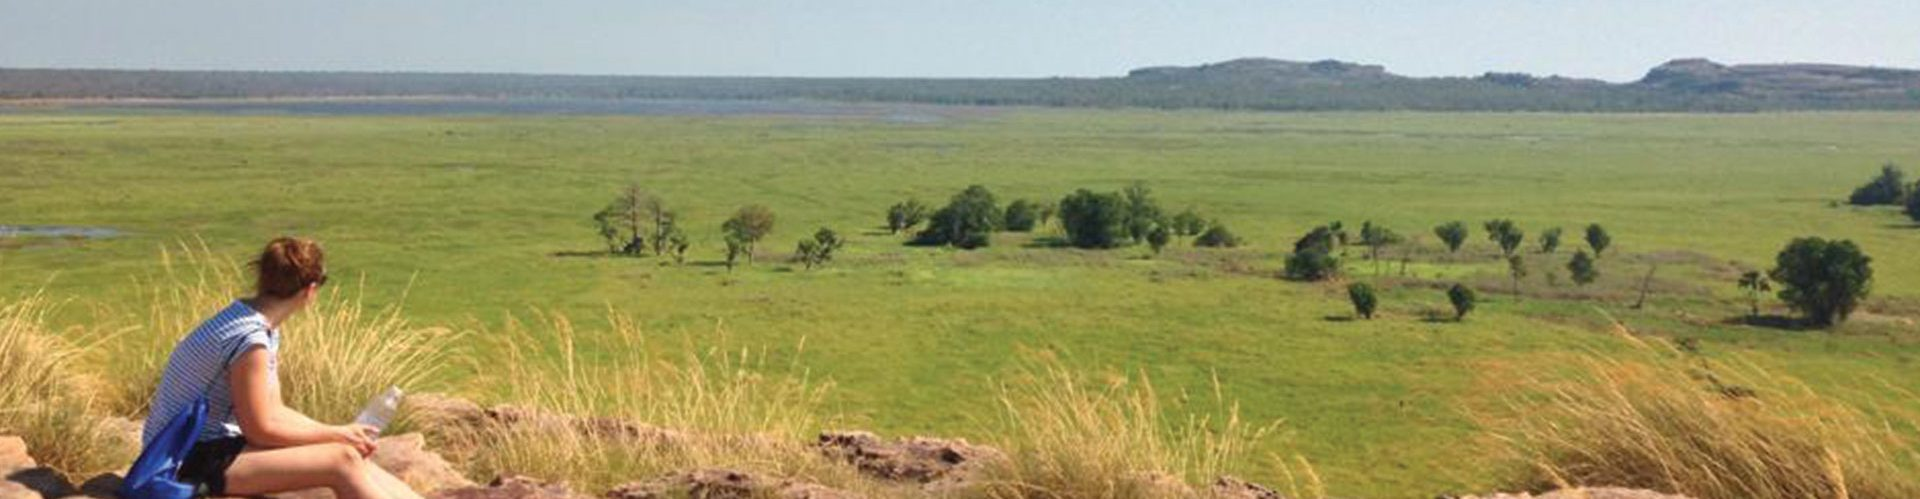 Ubirr is within the East Alligator region of Kakadu National Park